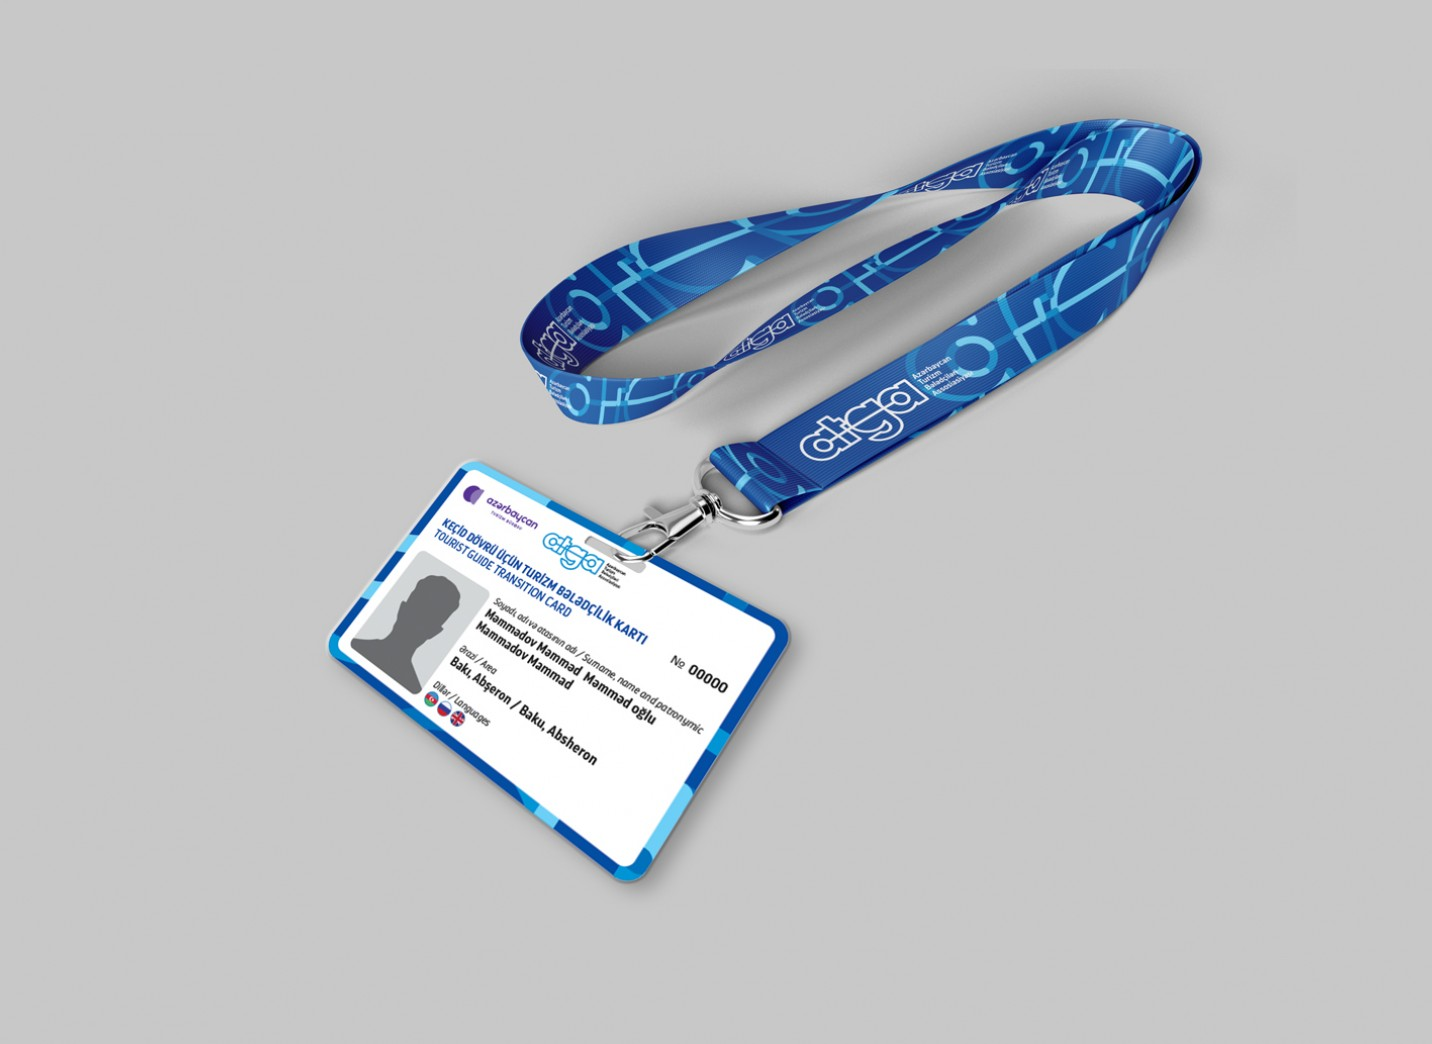 New tourist guide badges were delivered to guides